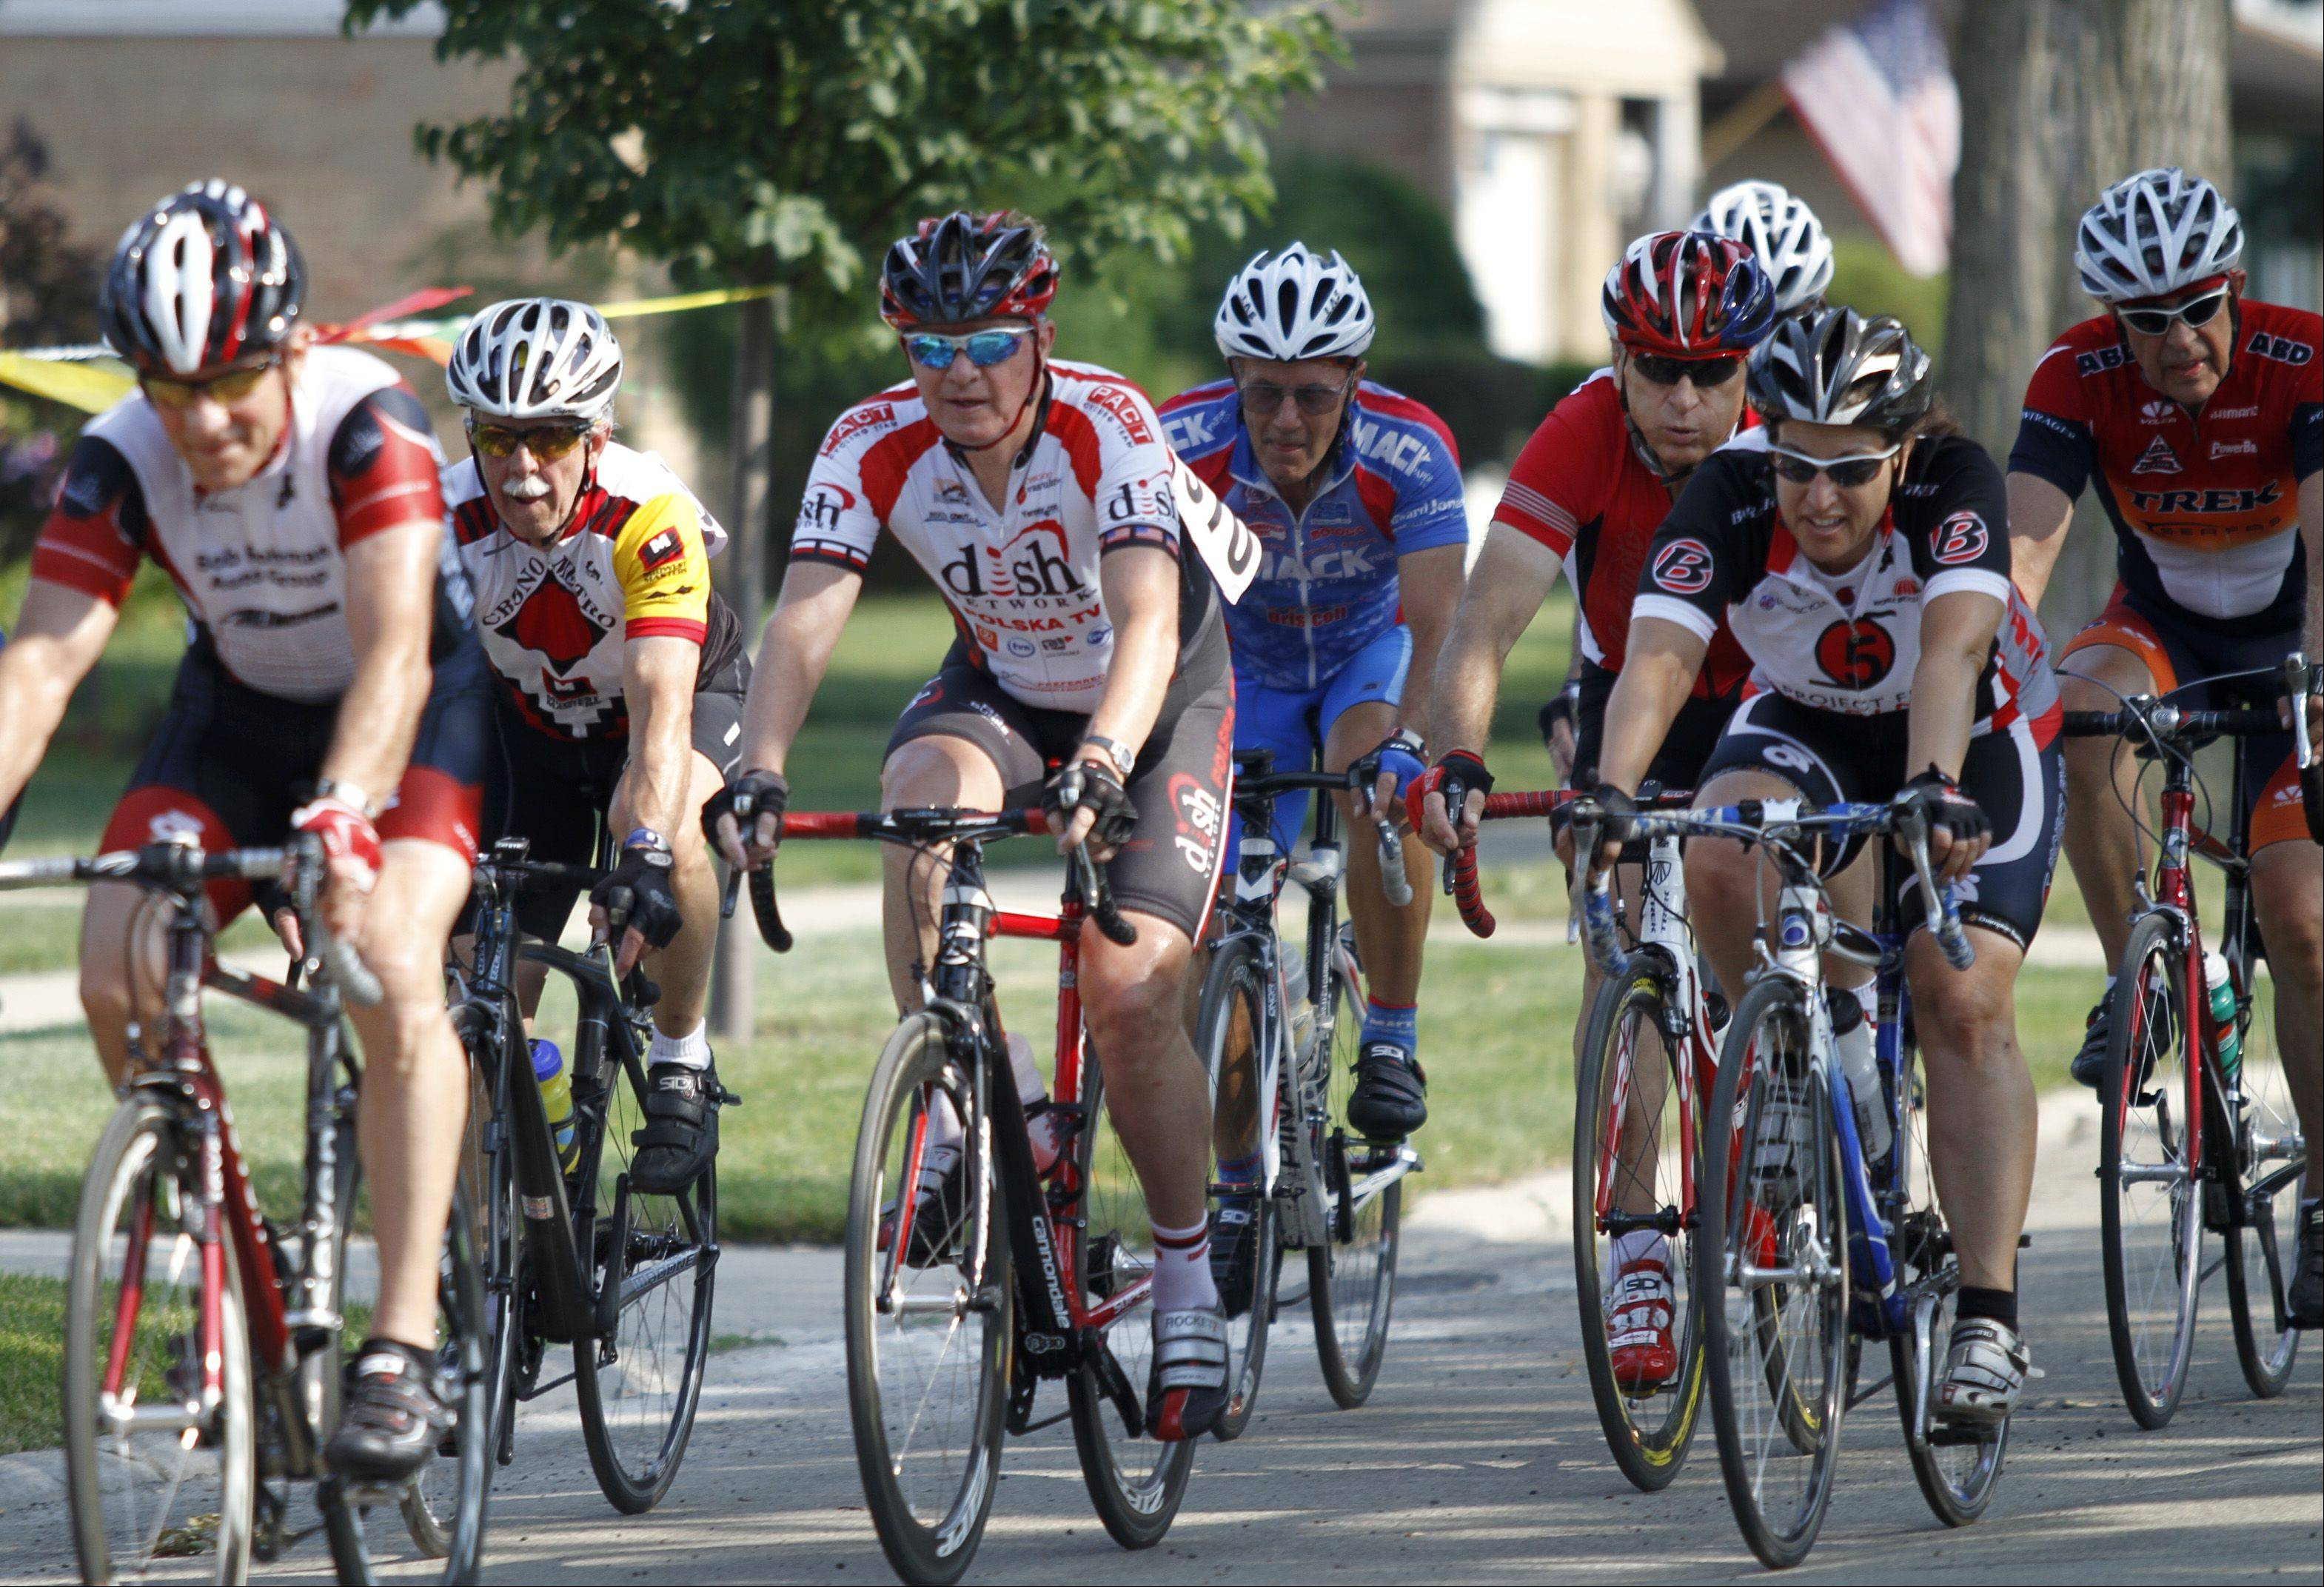 "Participants of the masters 60, 65, 70, 75, 80+ category of the ""Tour De Villas"" race Saturday morning in Des Plaines. Bicyclists from around the area participated in the second annual bike race."